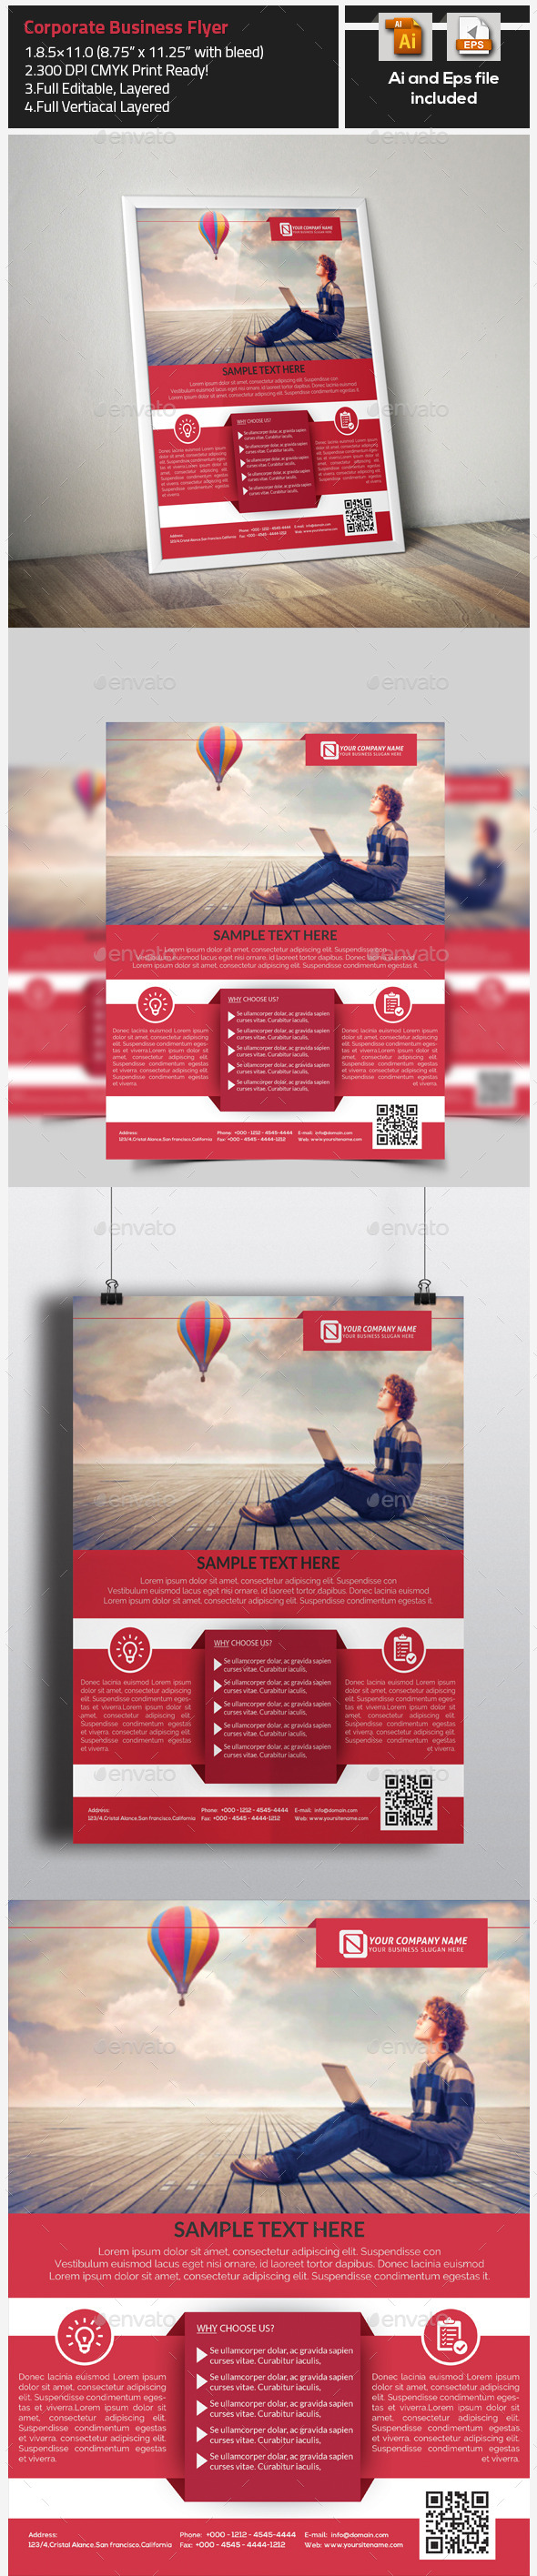 GraphicRiver Corporate Business Flyer Template 9722980